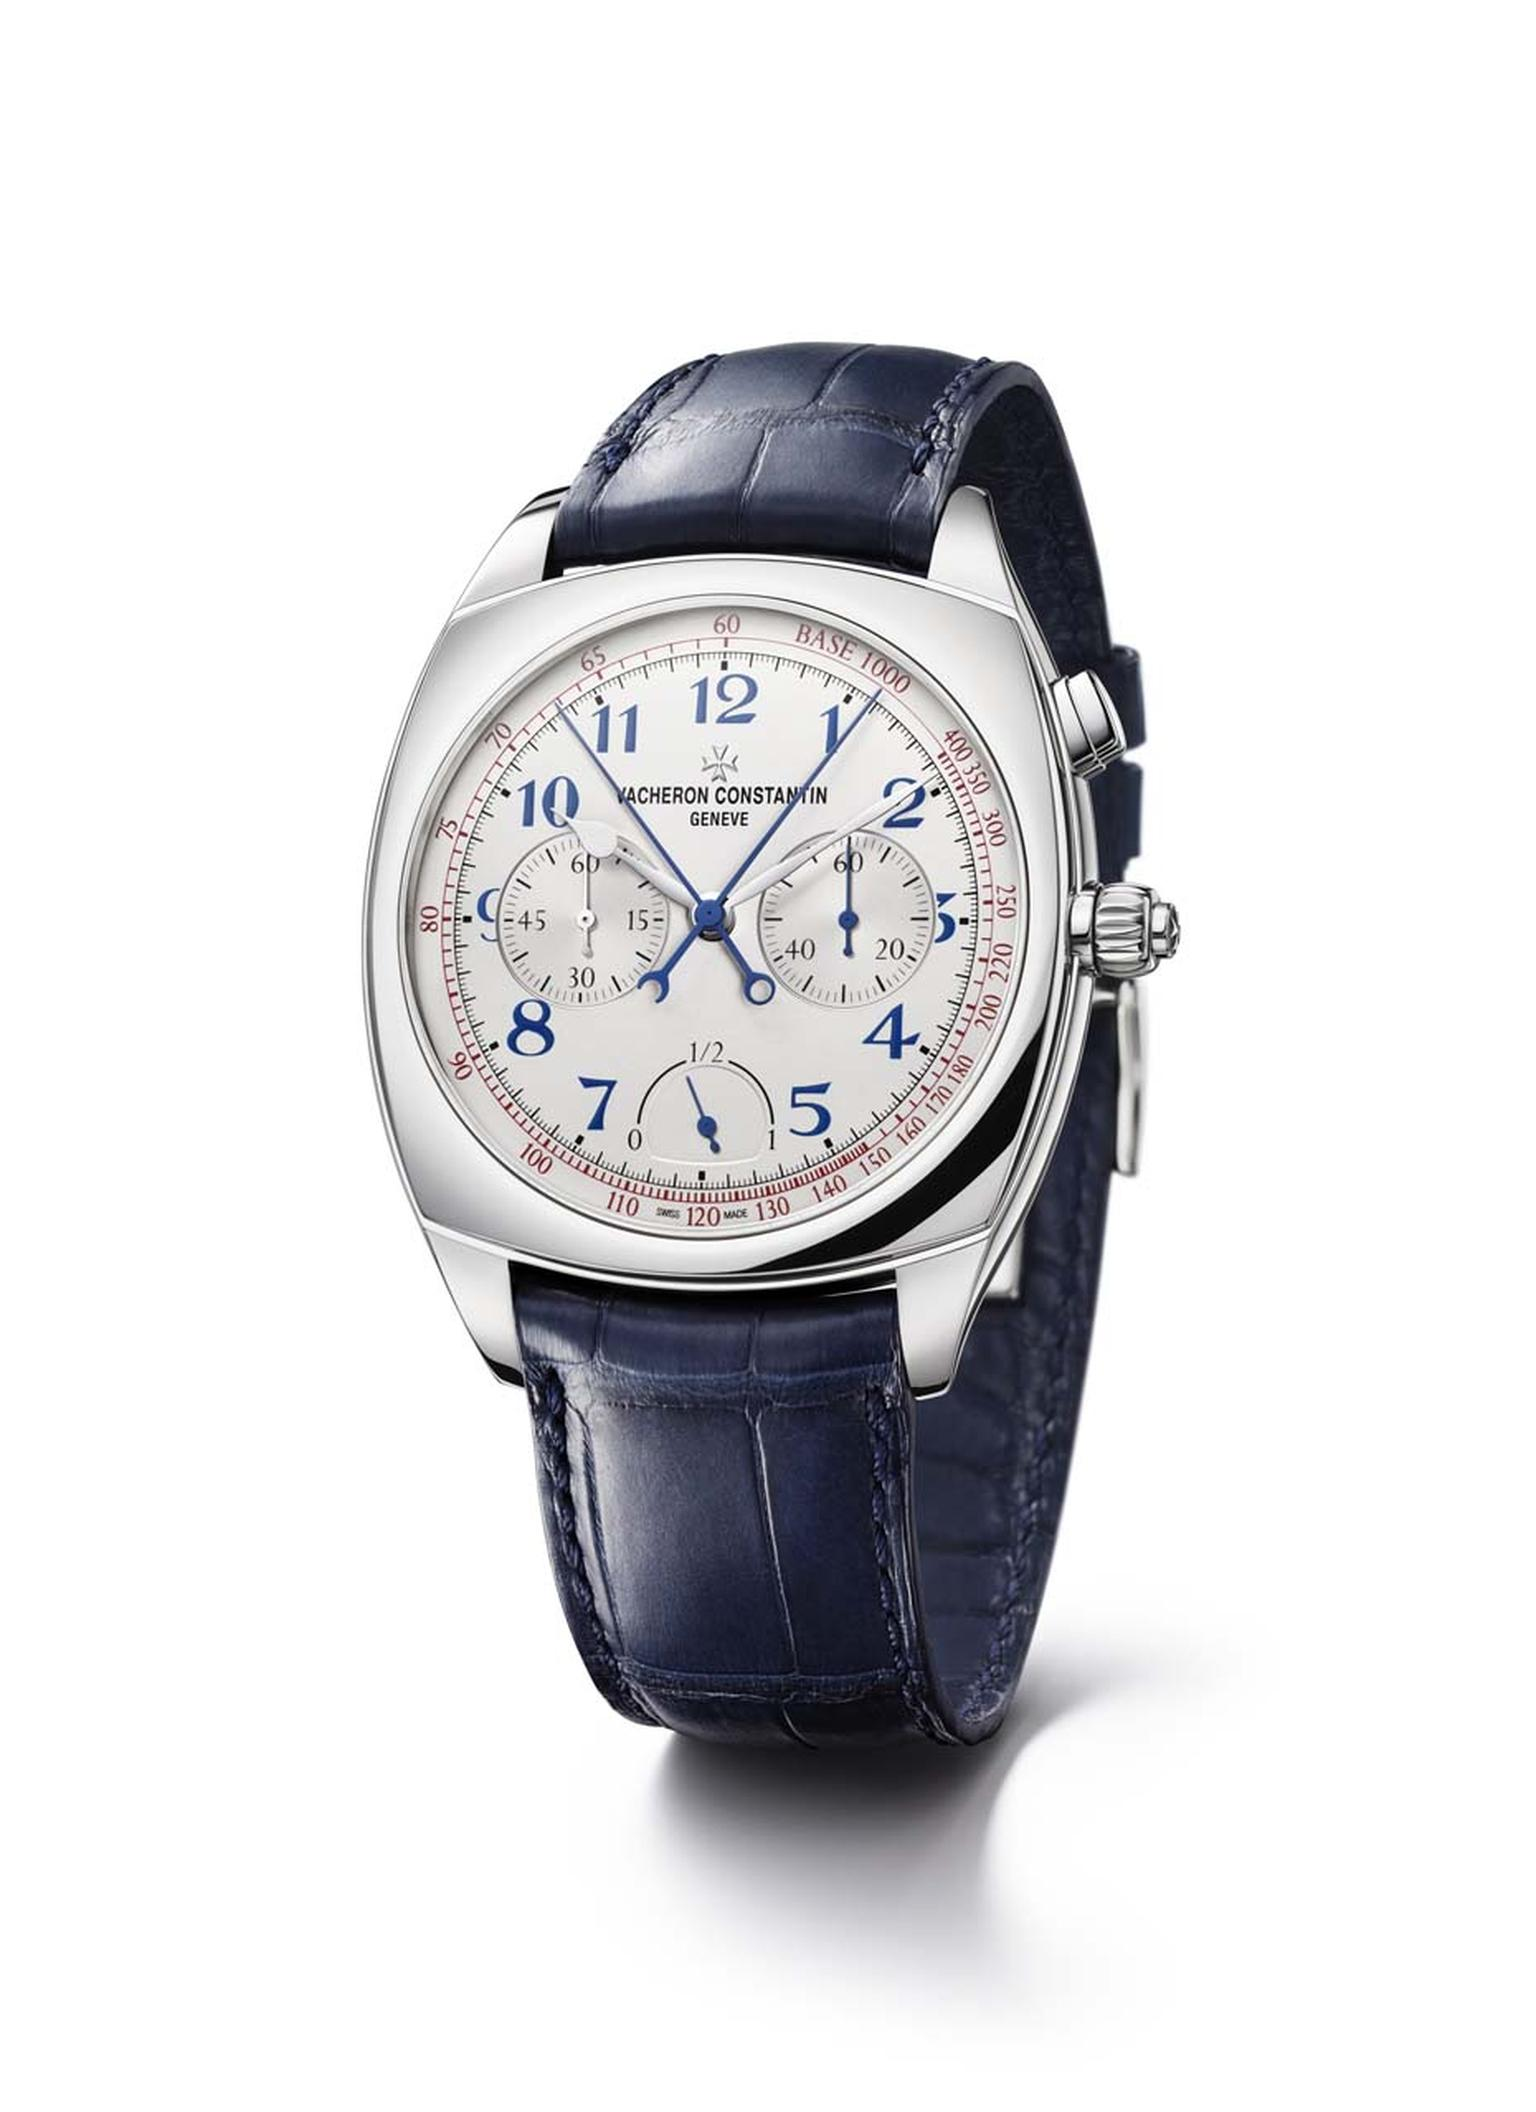 vacheron constantin watches: new harmony collection is a triumph